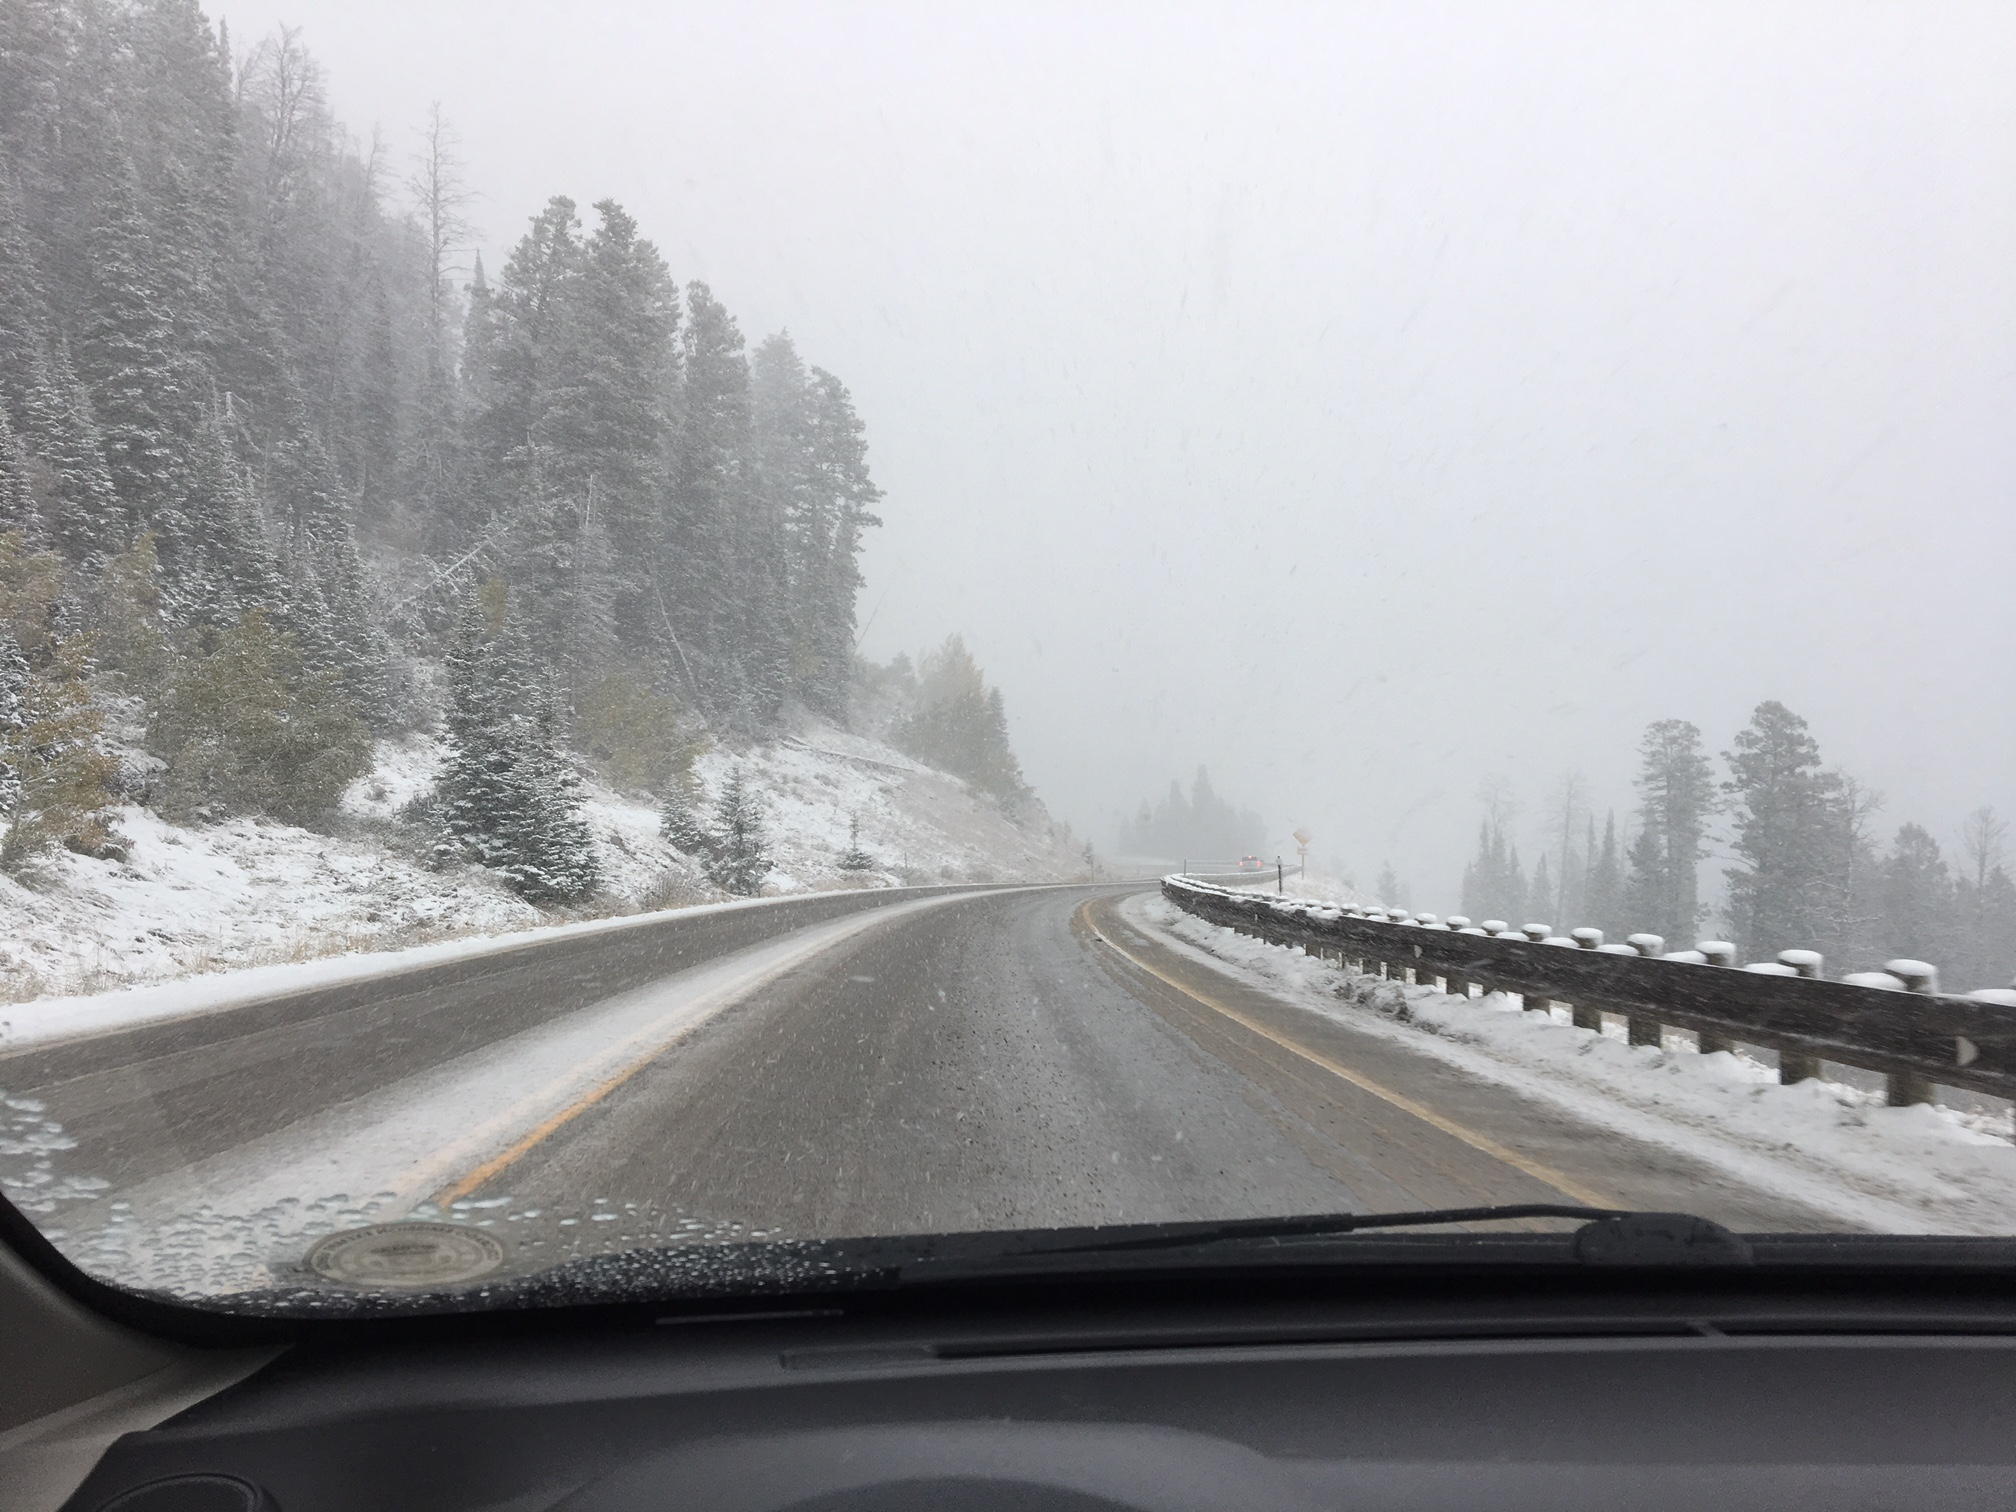 The drive over Teton Pass was a wintry experience.